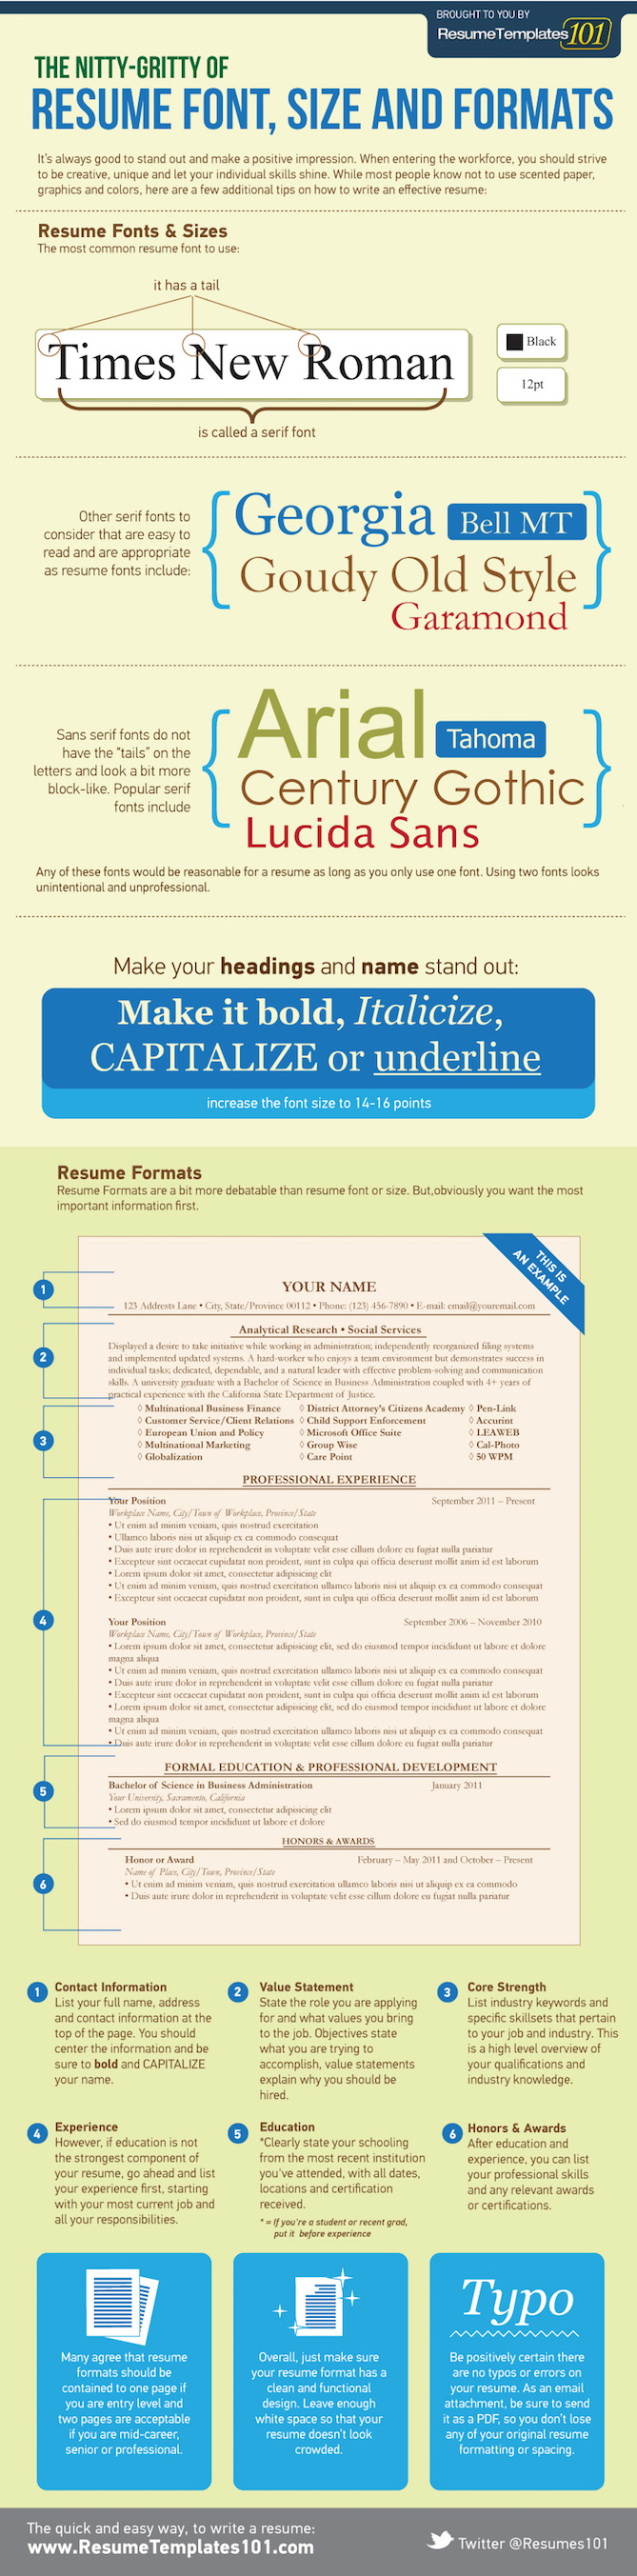 resume-formats-infographic